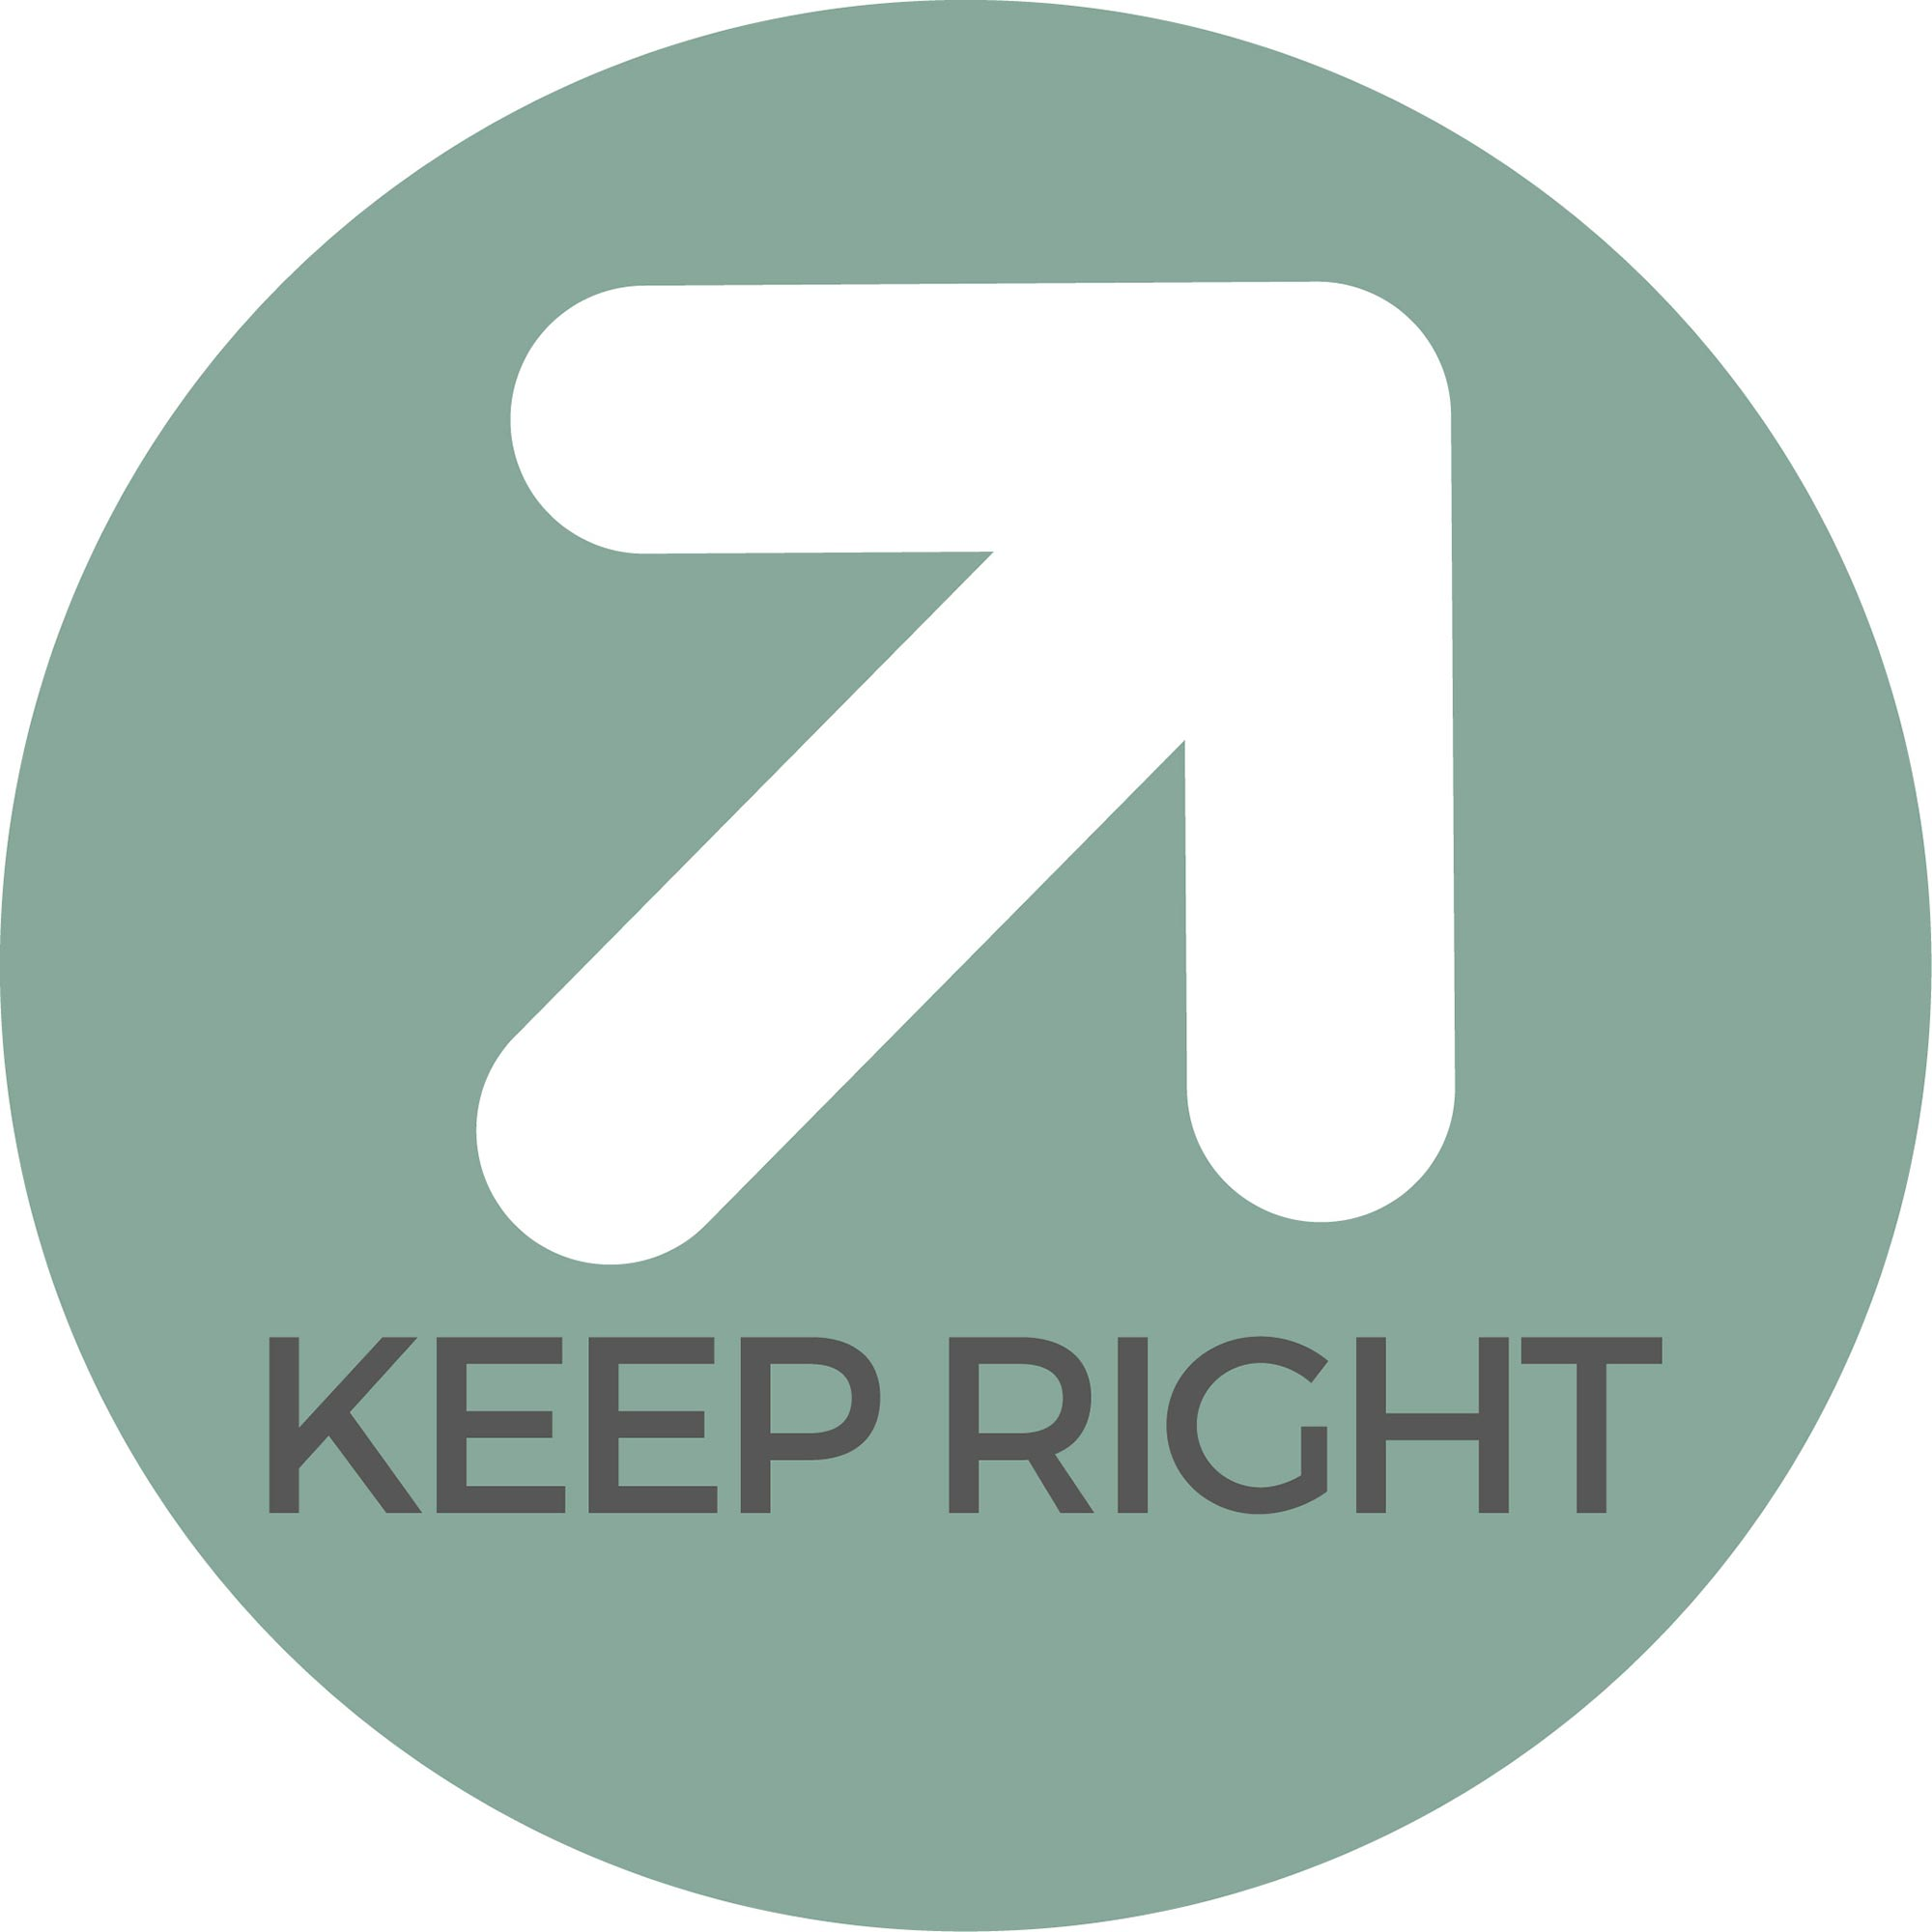 Keep right - Teal Sticker